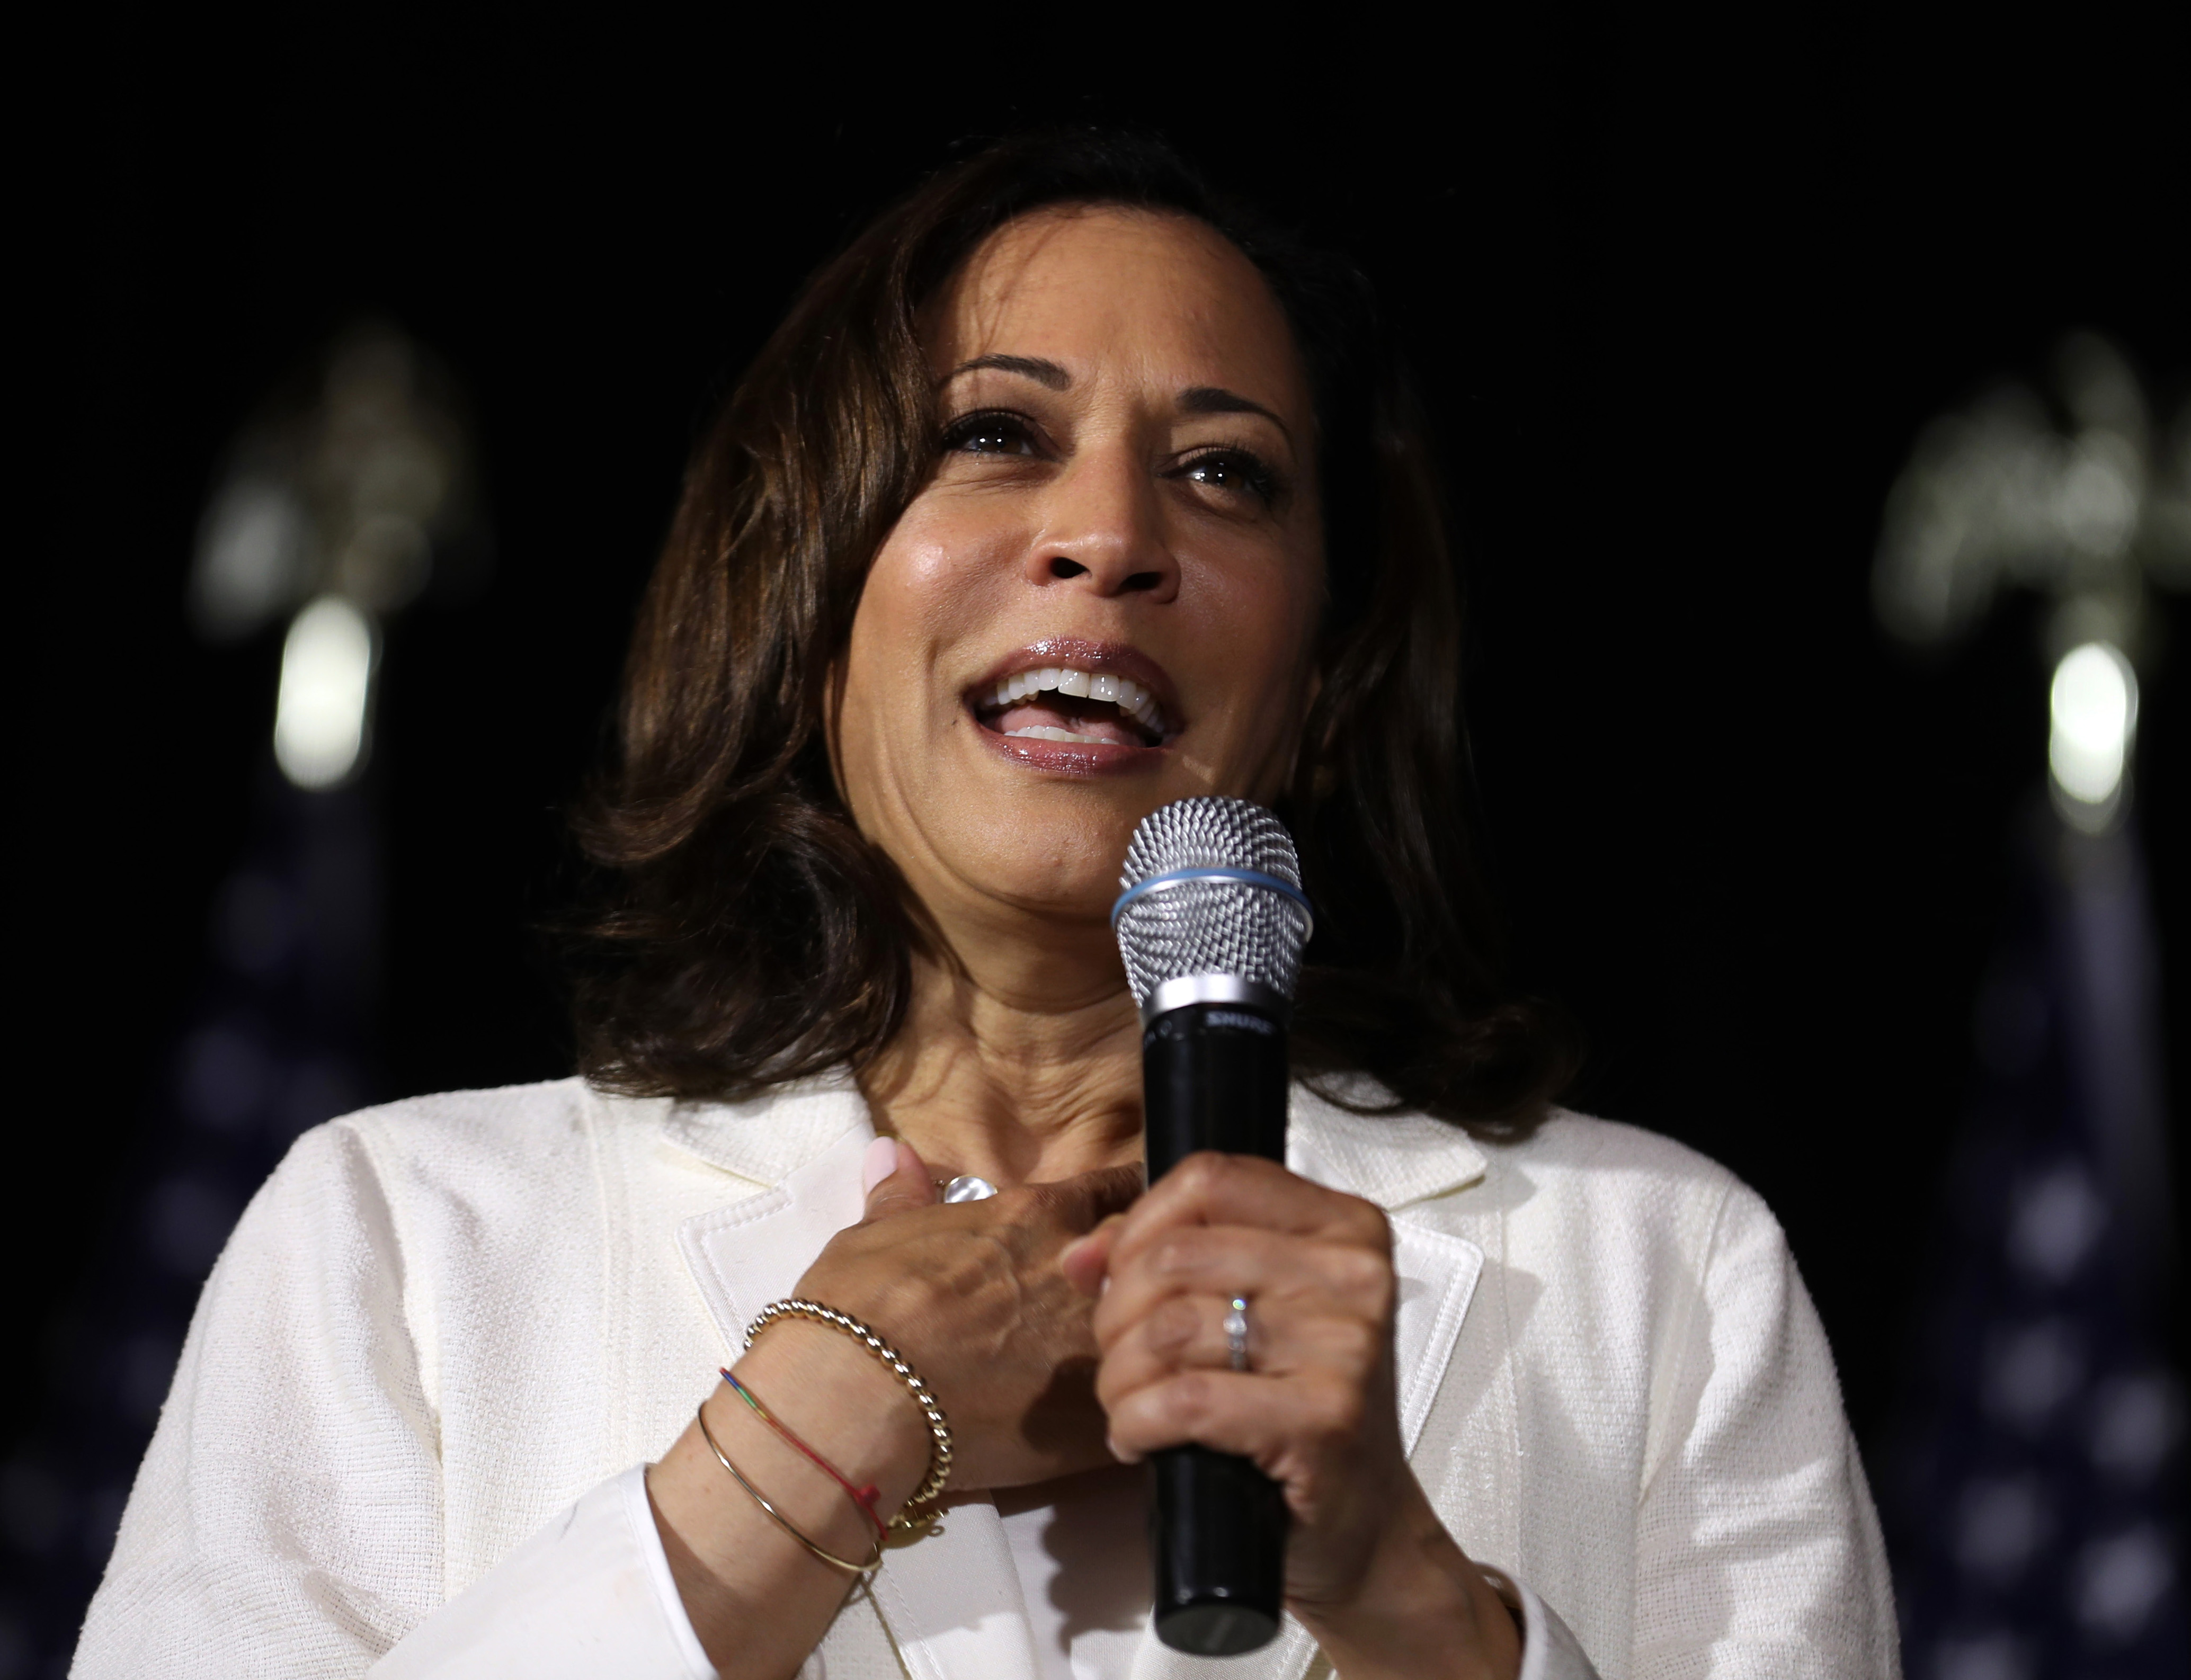 Westlake Legal Group kamala-harris-getty Kamala Harris asks audience if America is 'ready' for her presidency, crowd shouts 'no' Joseph Wulfsohn fox-news/tech/companies/twitter fox-news/politics/elections fox-news/politics/2020-presidential-election fox-news/person/kamala-harris fox news fnc/media fnc article 2c551975-4813-5e54-93b7-b19fdc452431